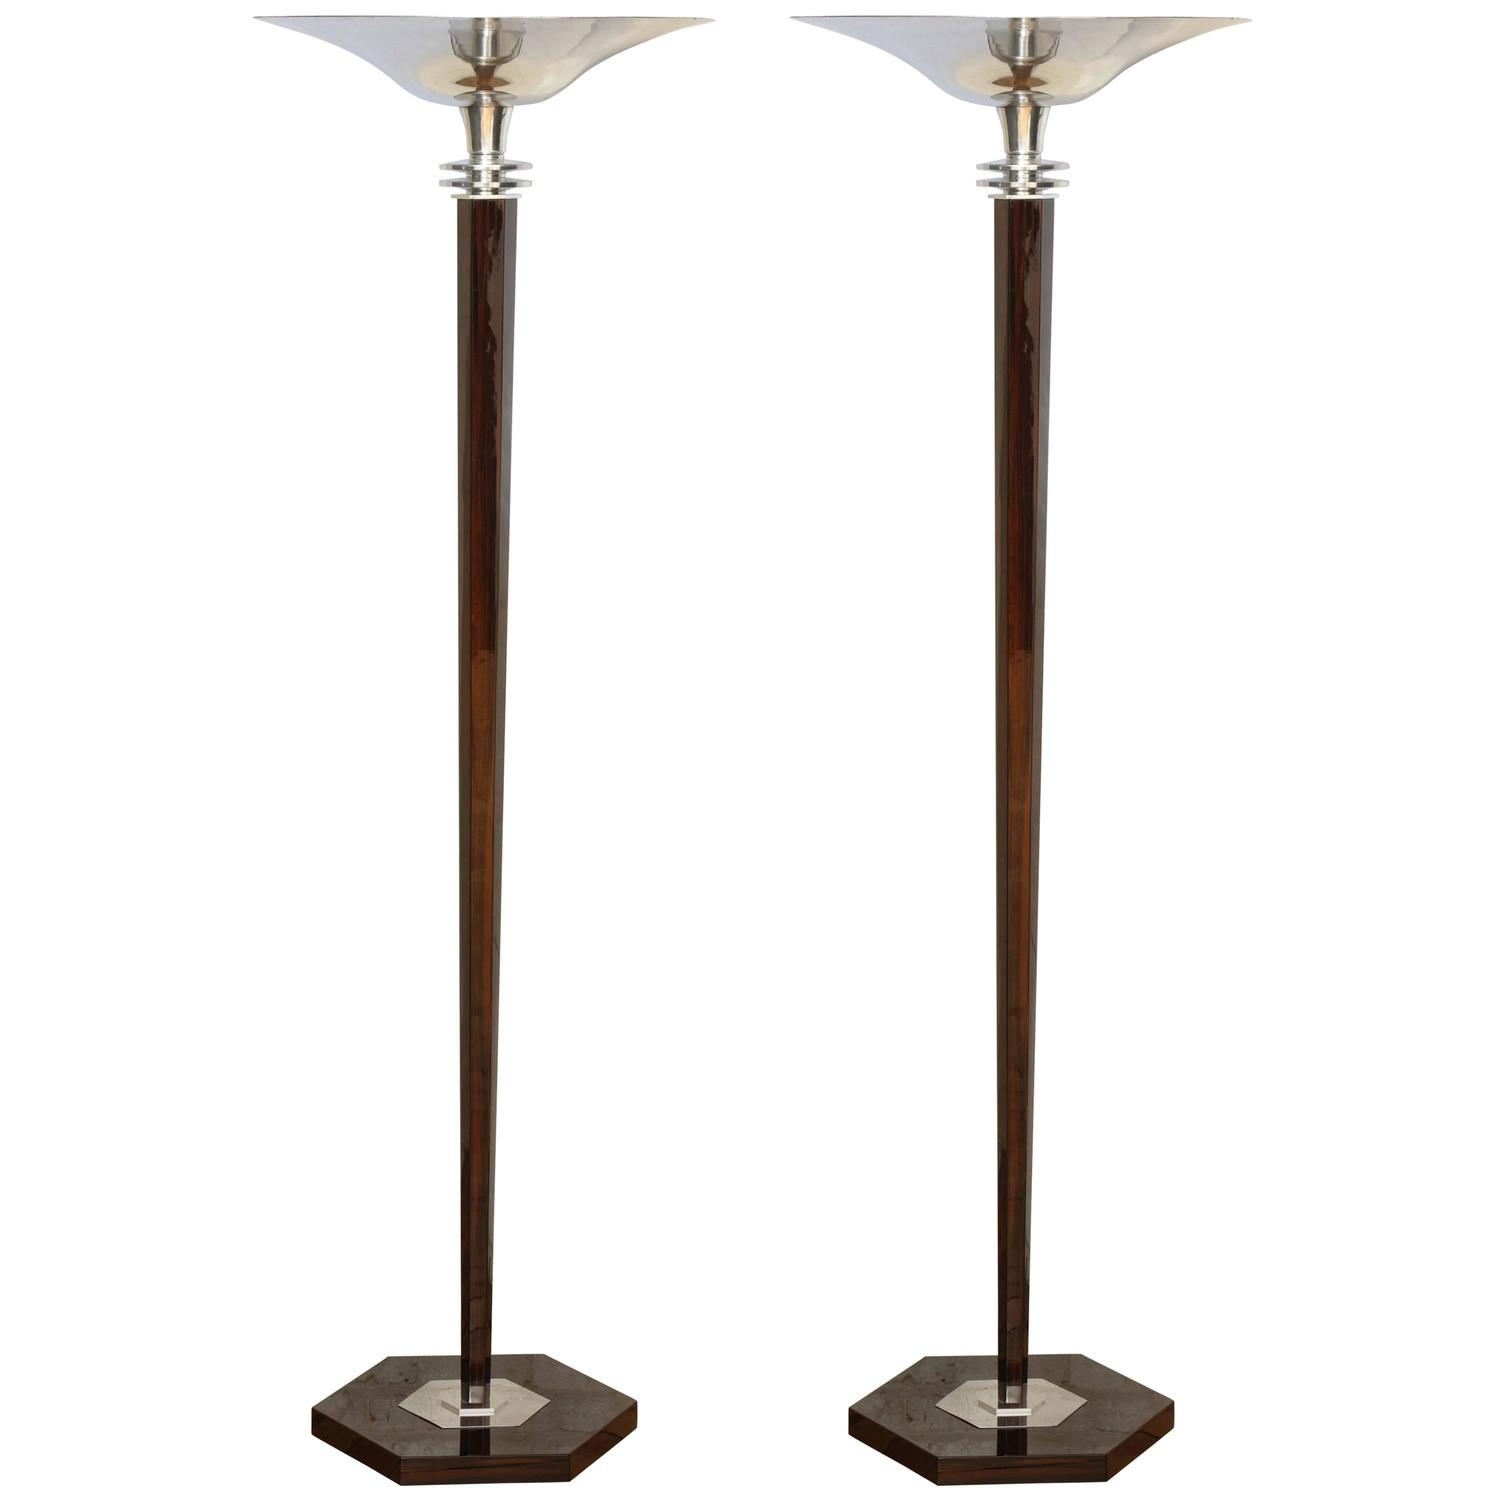 Elegant art deco torchiere floor lamp at 1stdibs for Floor lamp vs torchiere